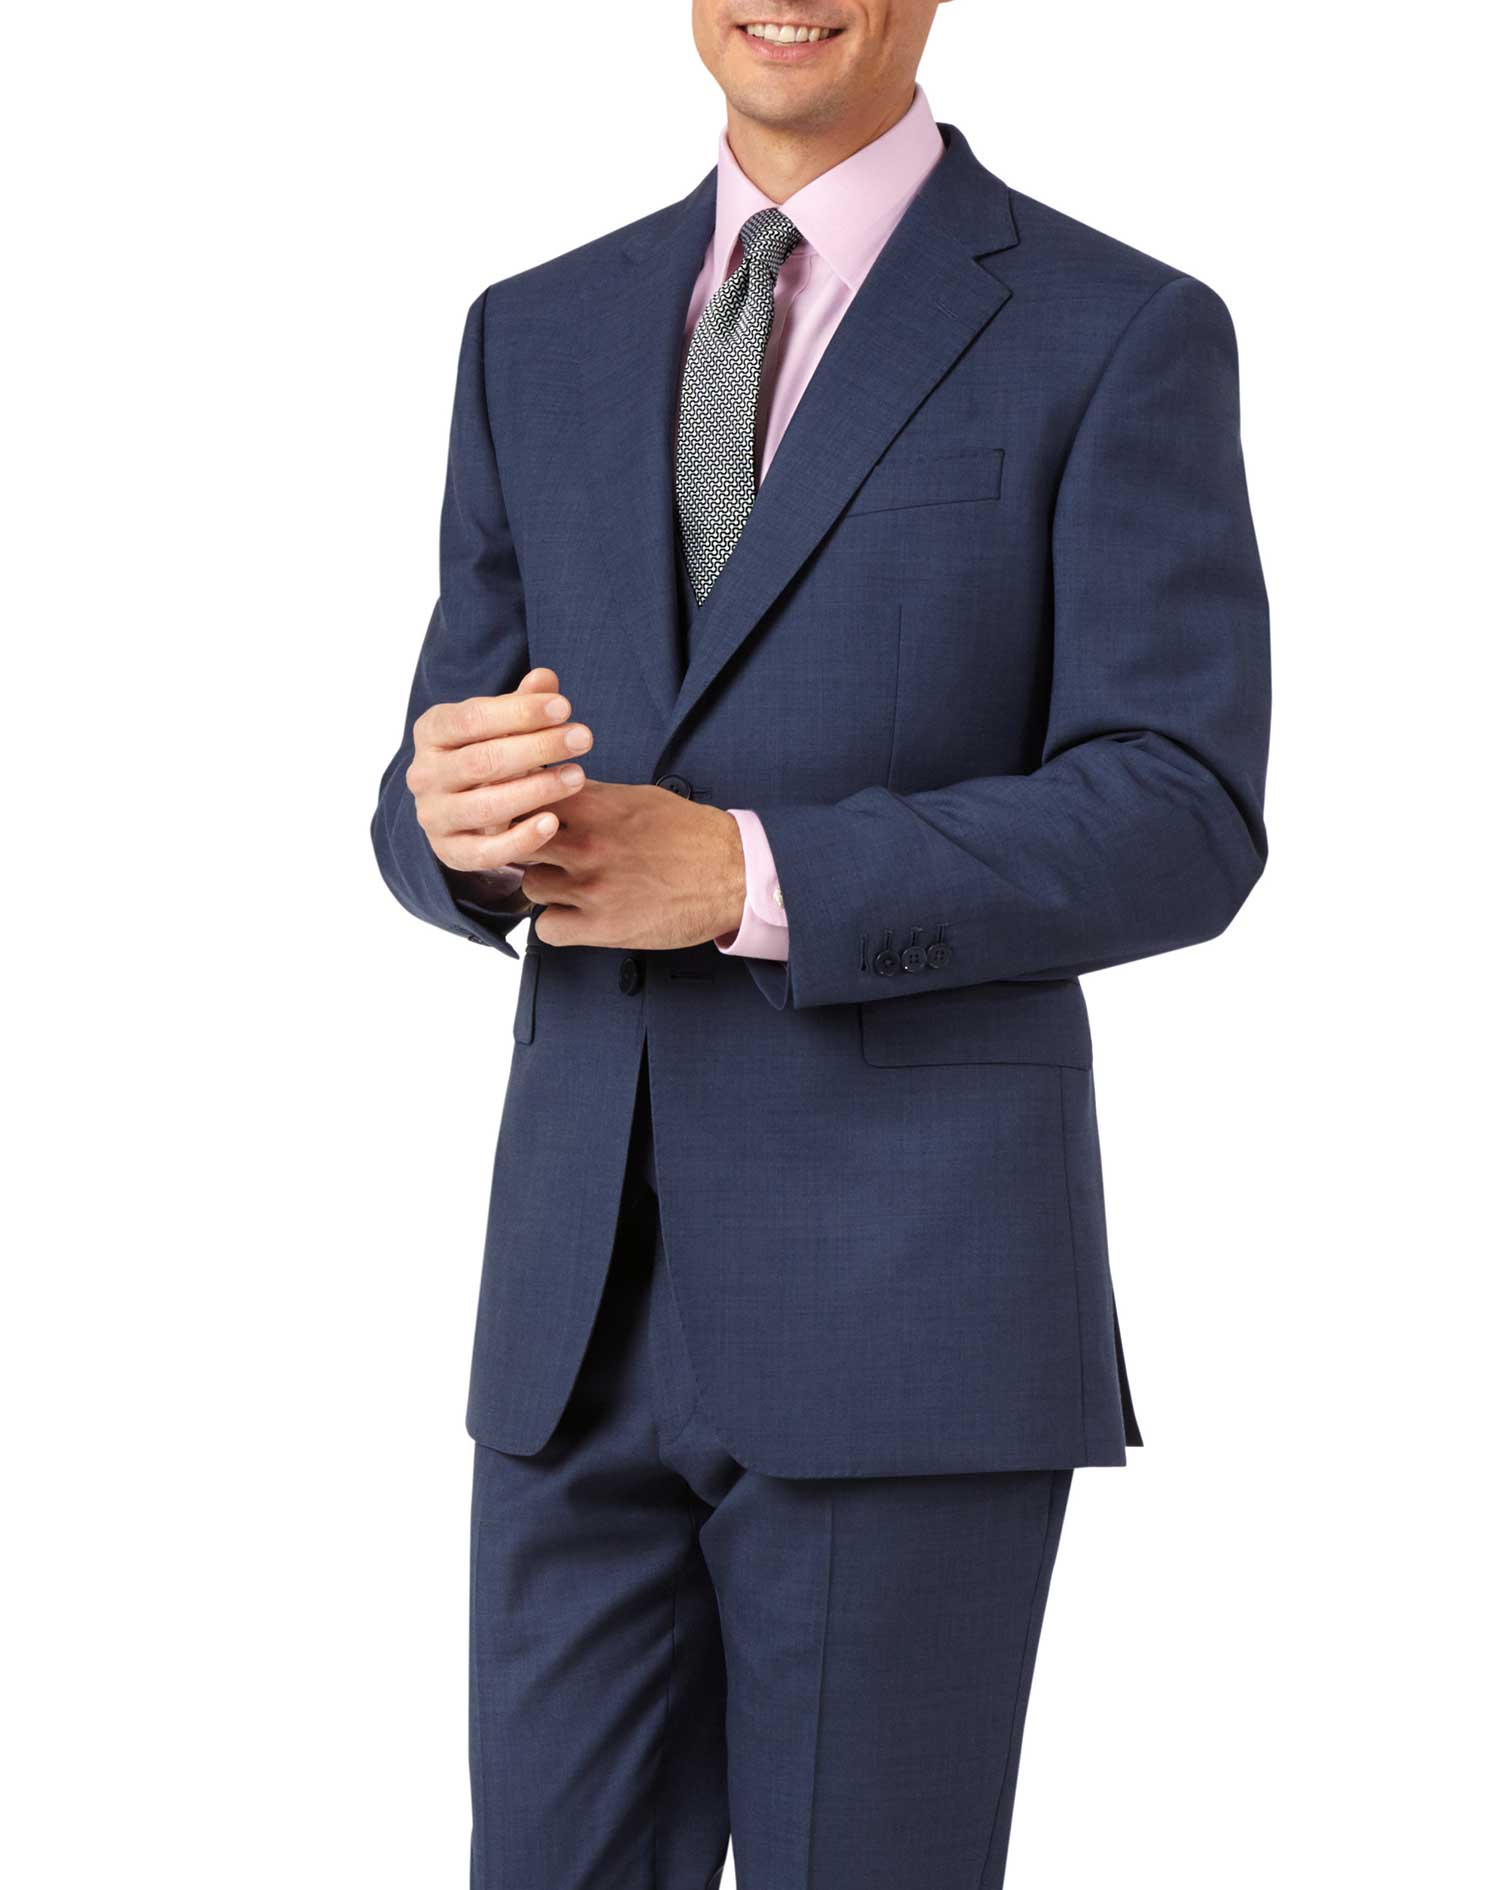 Image of Charles Tyrwhitt Airforce Blue Slim Fit Sharkskin Travel Suit Wool Jacket Size 36 Short by Charles Tyrwhitt